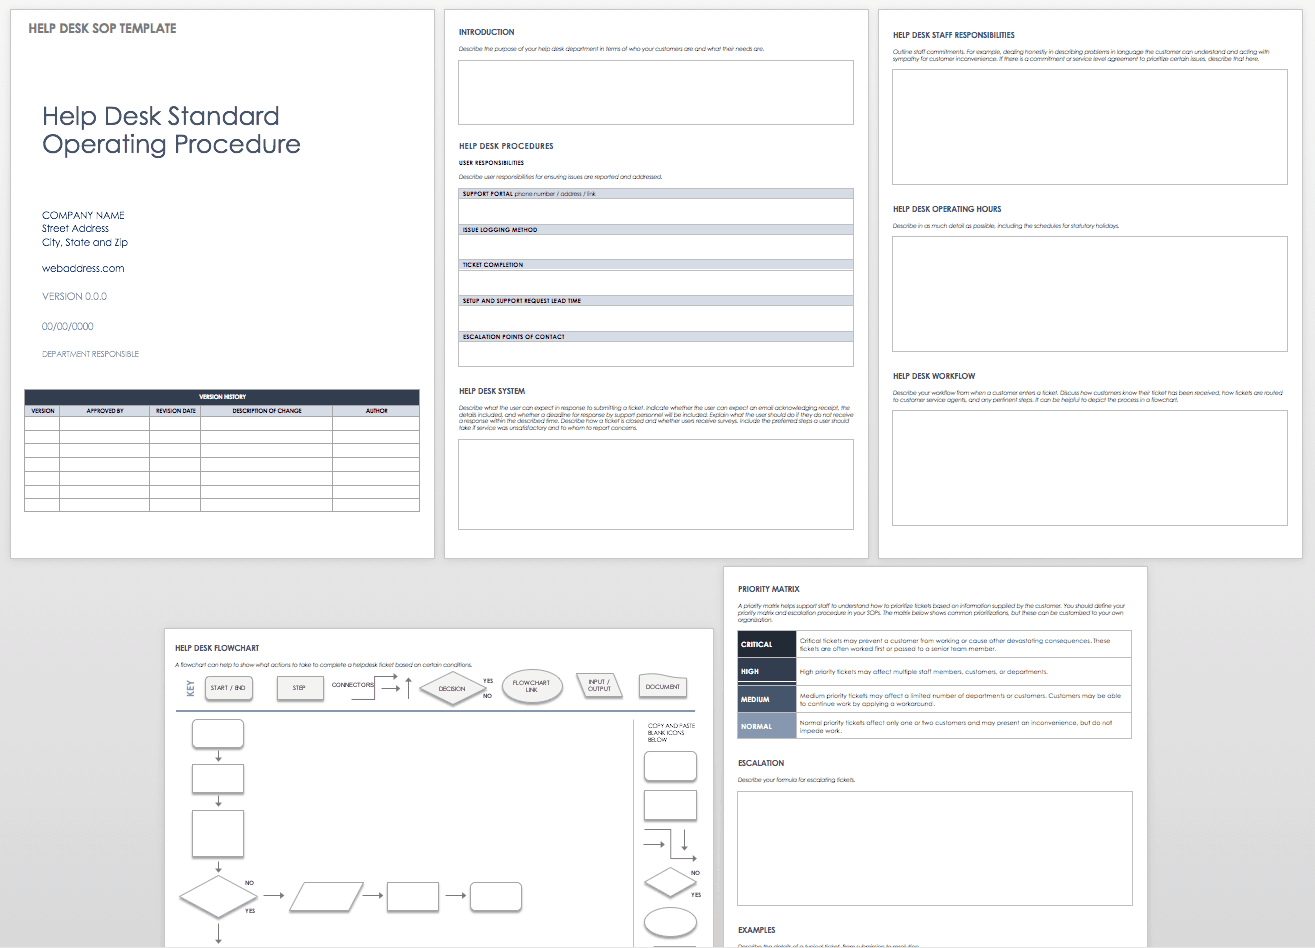 help desk procedures template - standard operating procedures templates smartsheet